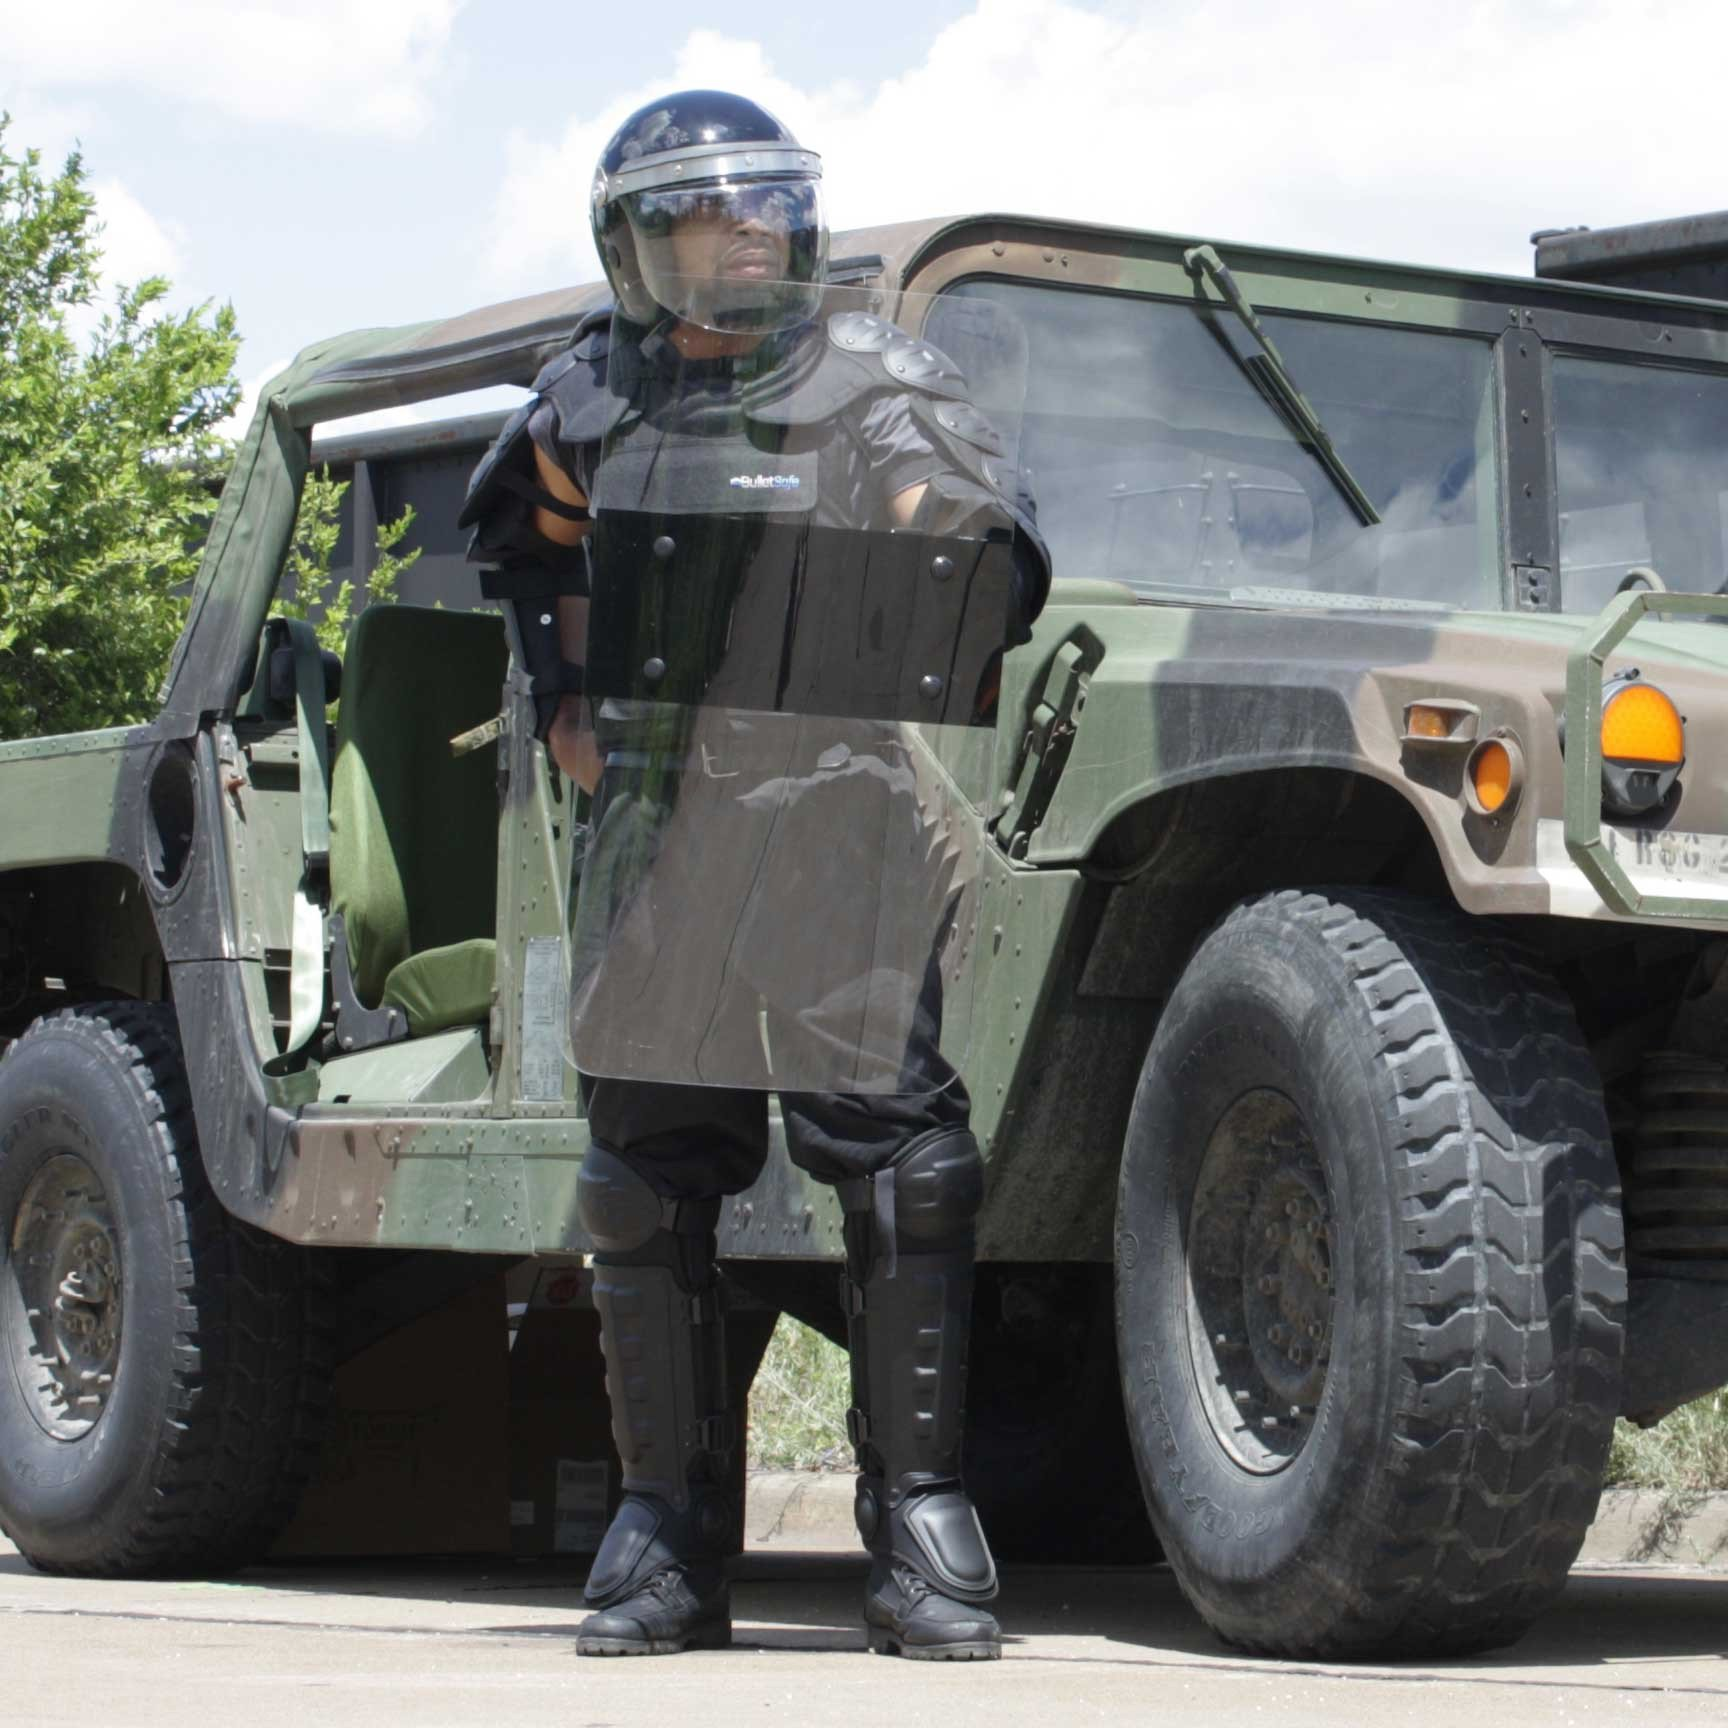 A man standing beside an army truck wearing a riot gear bundle